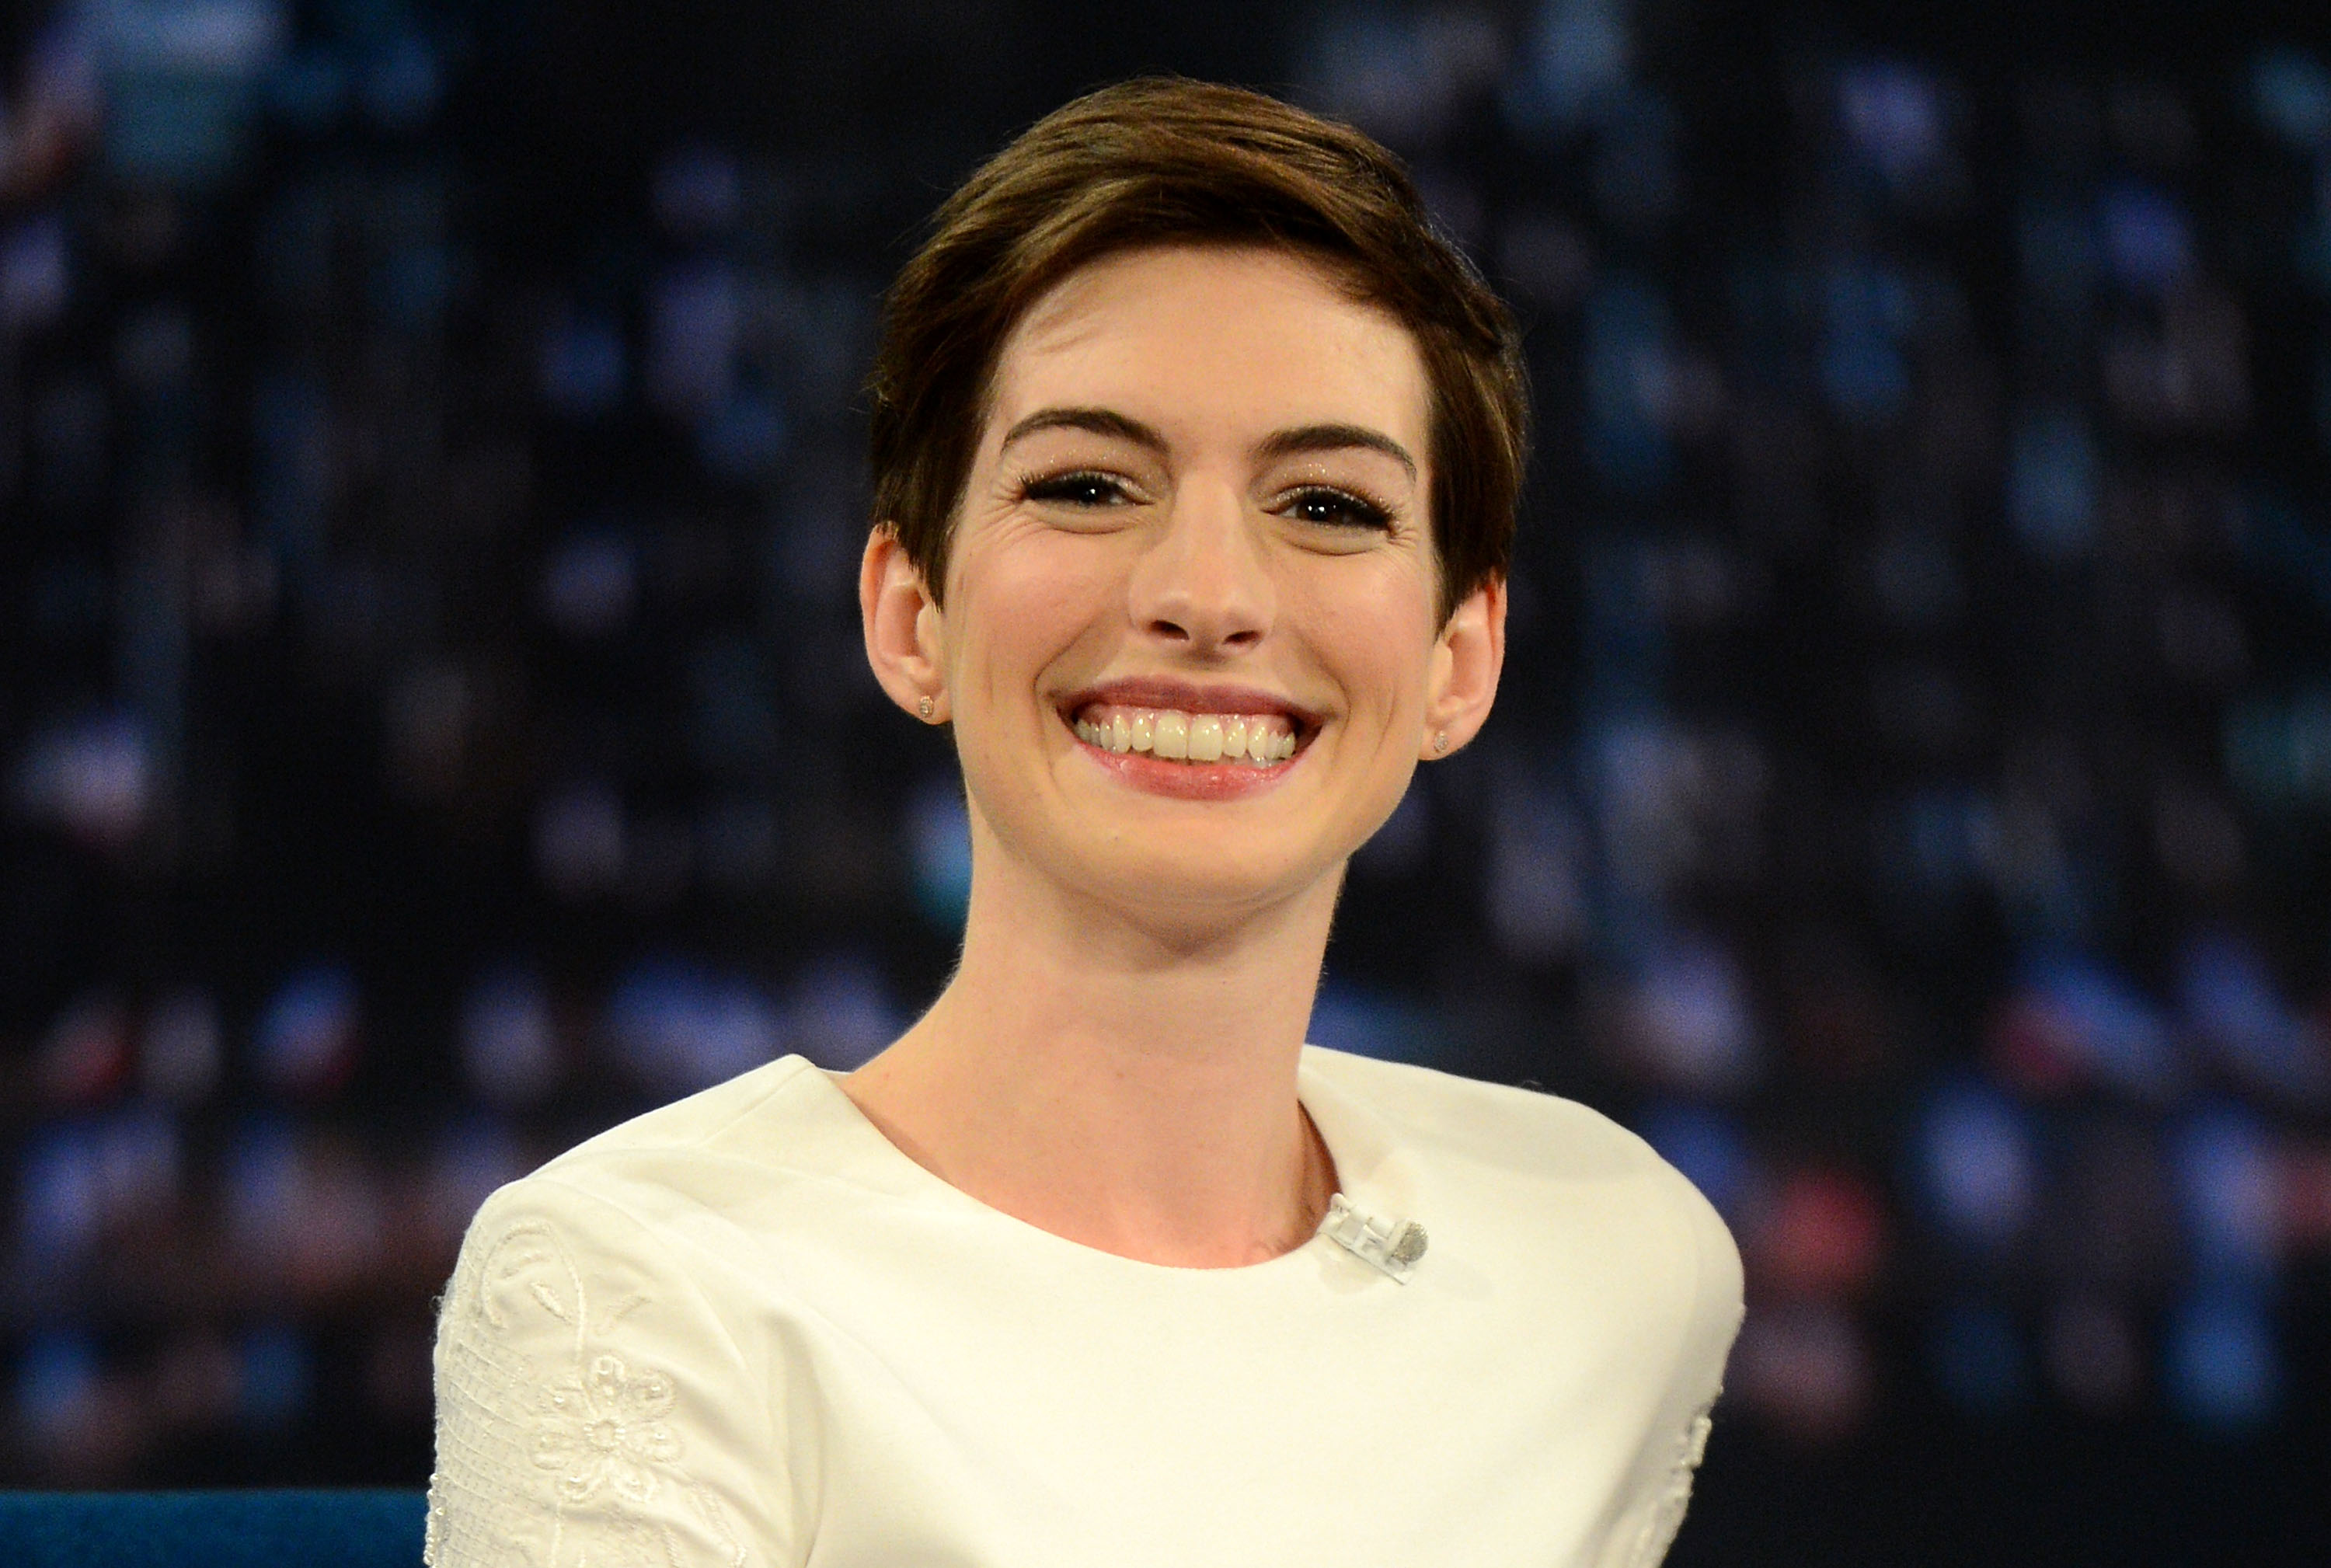 NEW YORK, NY - DECEMBER 11:  Actress Anne Hathaway visits 'Late Night With Jimmy Fallon' at Rockefeller Center on December 11